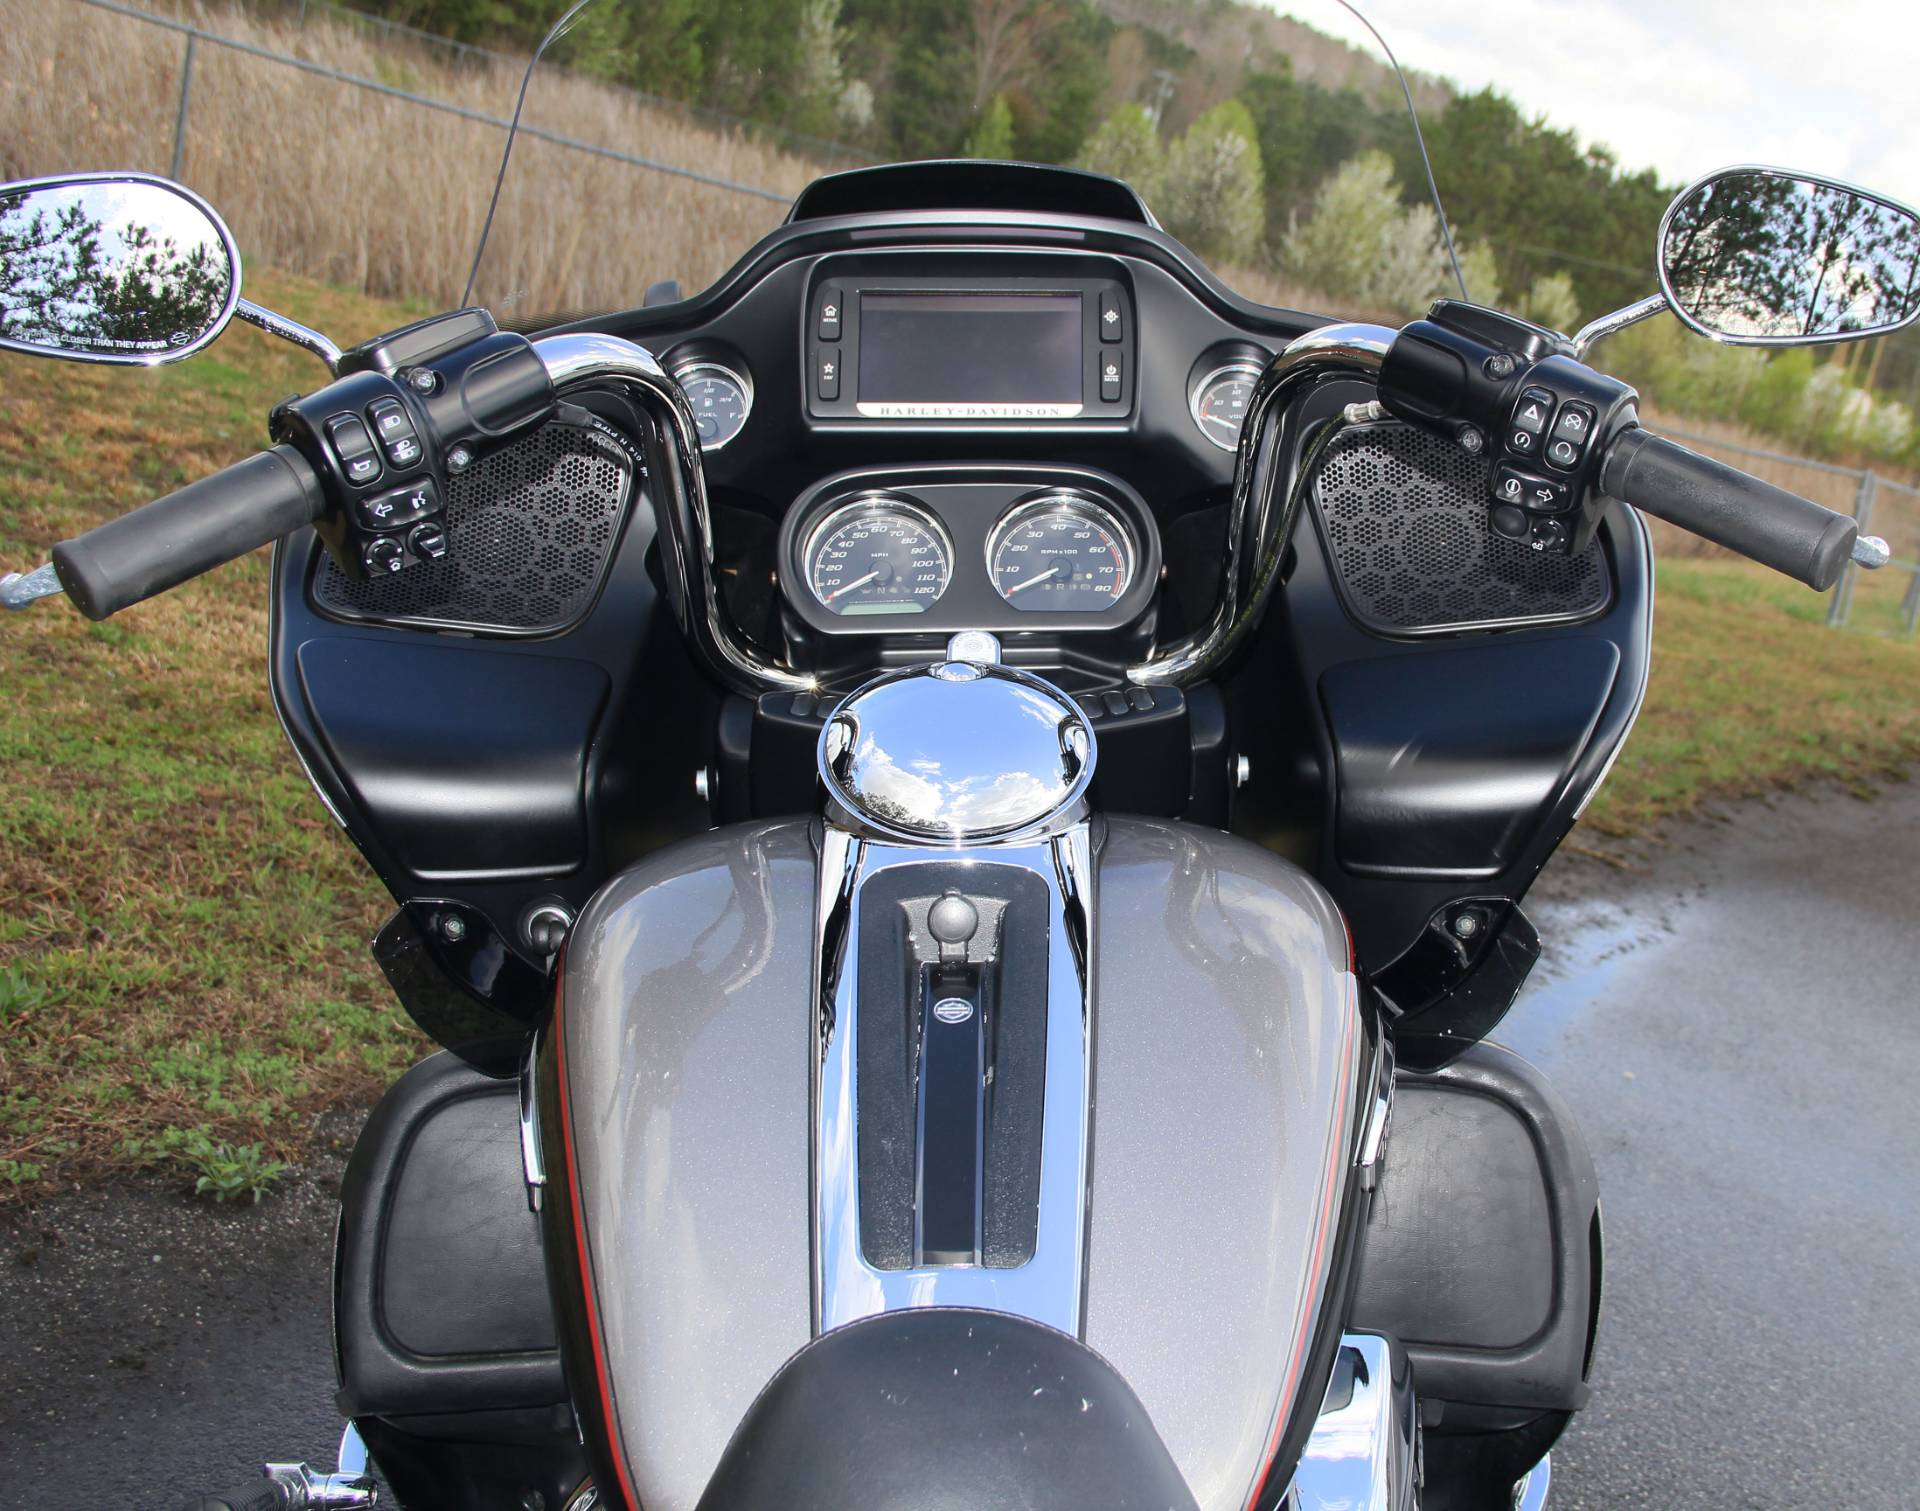 2017 Harley-Davidson Road Glide Ultra in Cartersville, Georgia - Photo 6